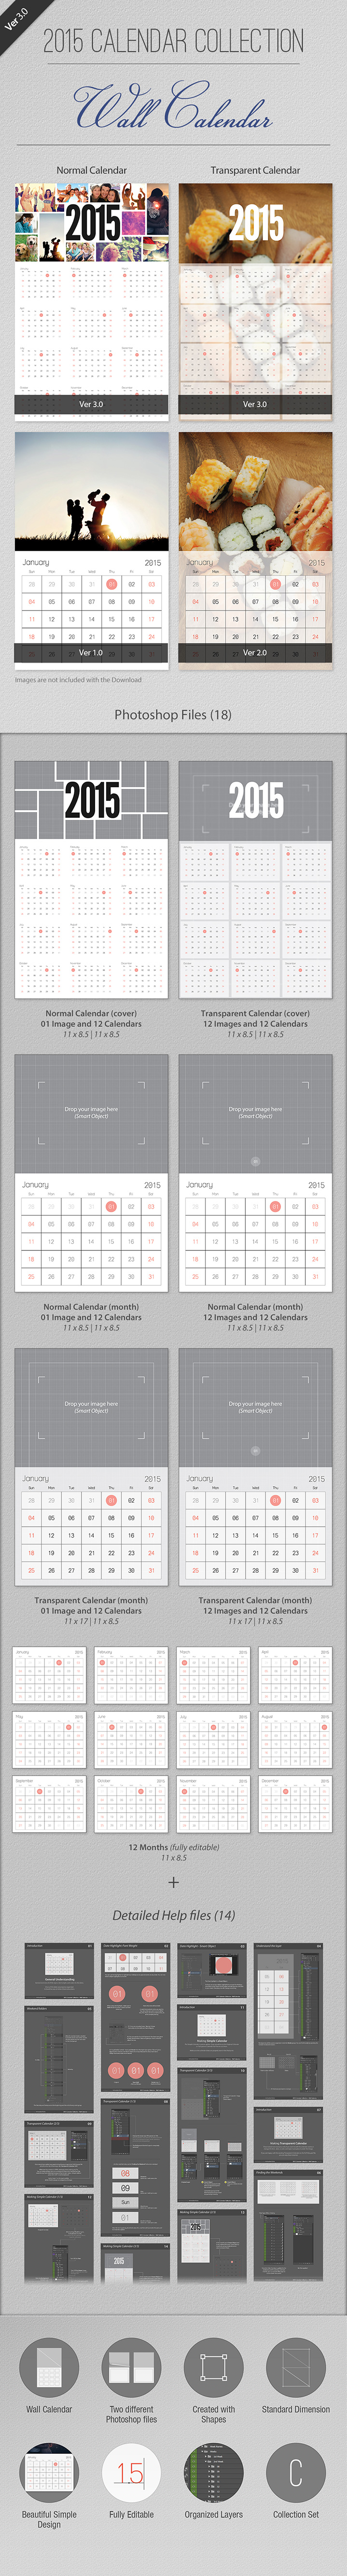 2015 Calendar Collection - Wall Calendar.jpg